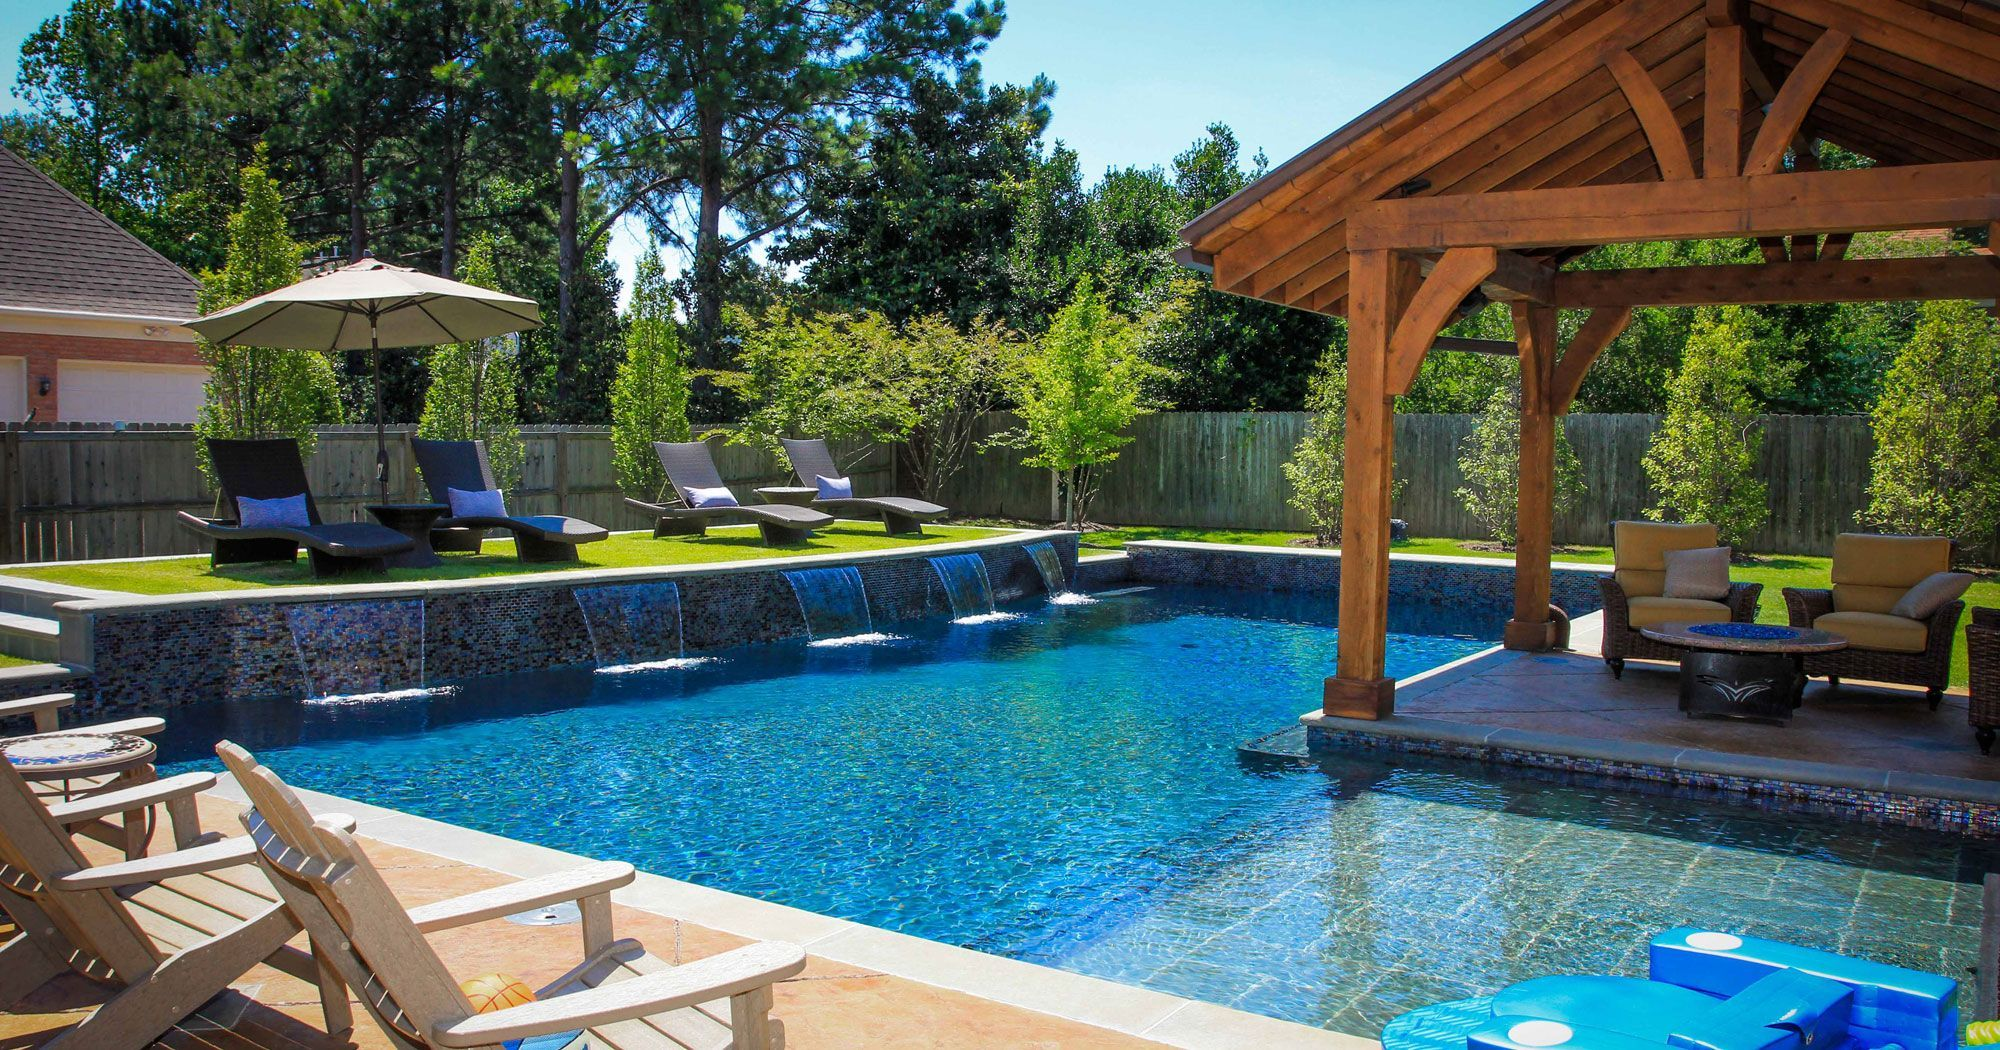 Backyard Pool Designs Inground Ideas Swimming Backyard Slide Company Salt  Water Pools . Pool Area Designs For Backyard Home Ideas